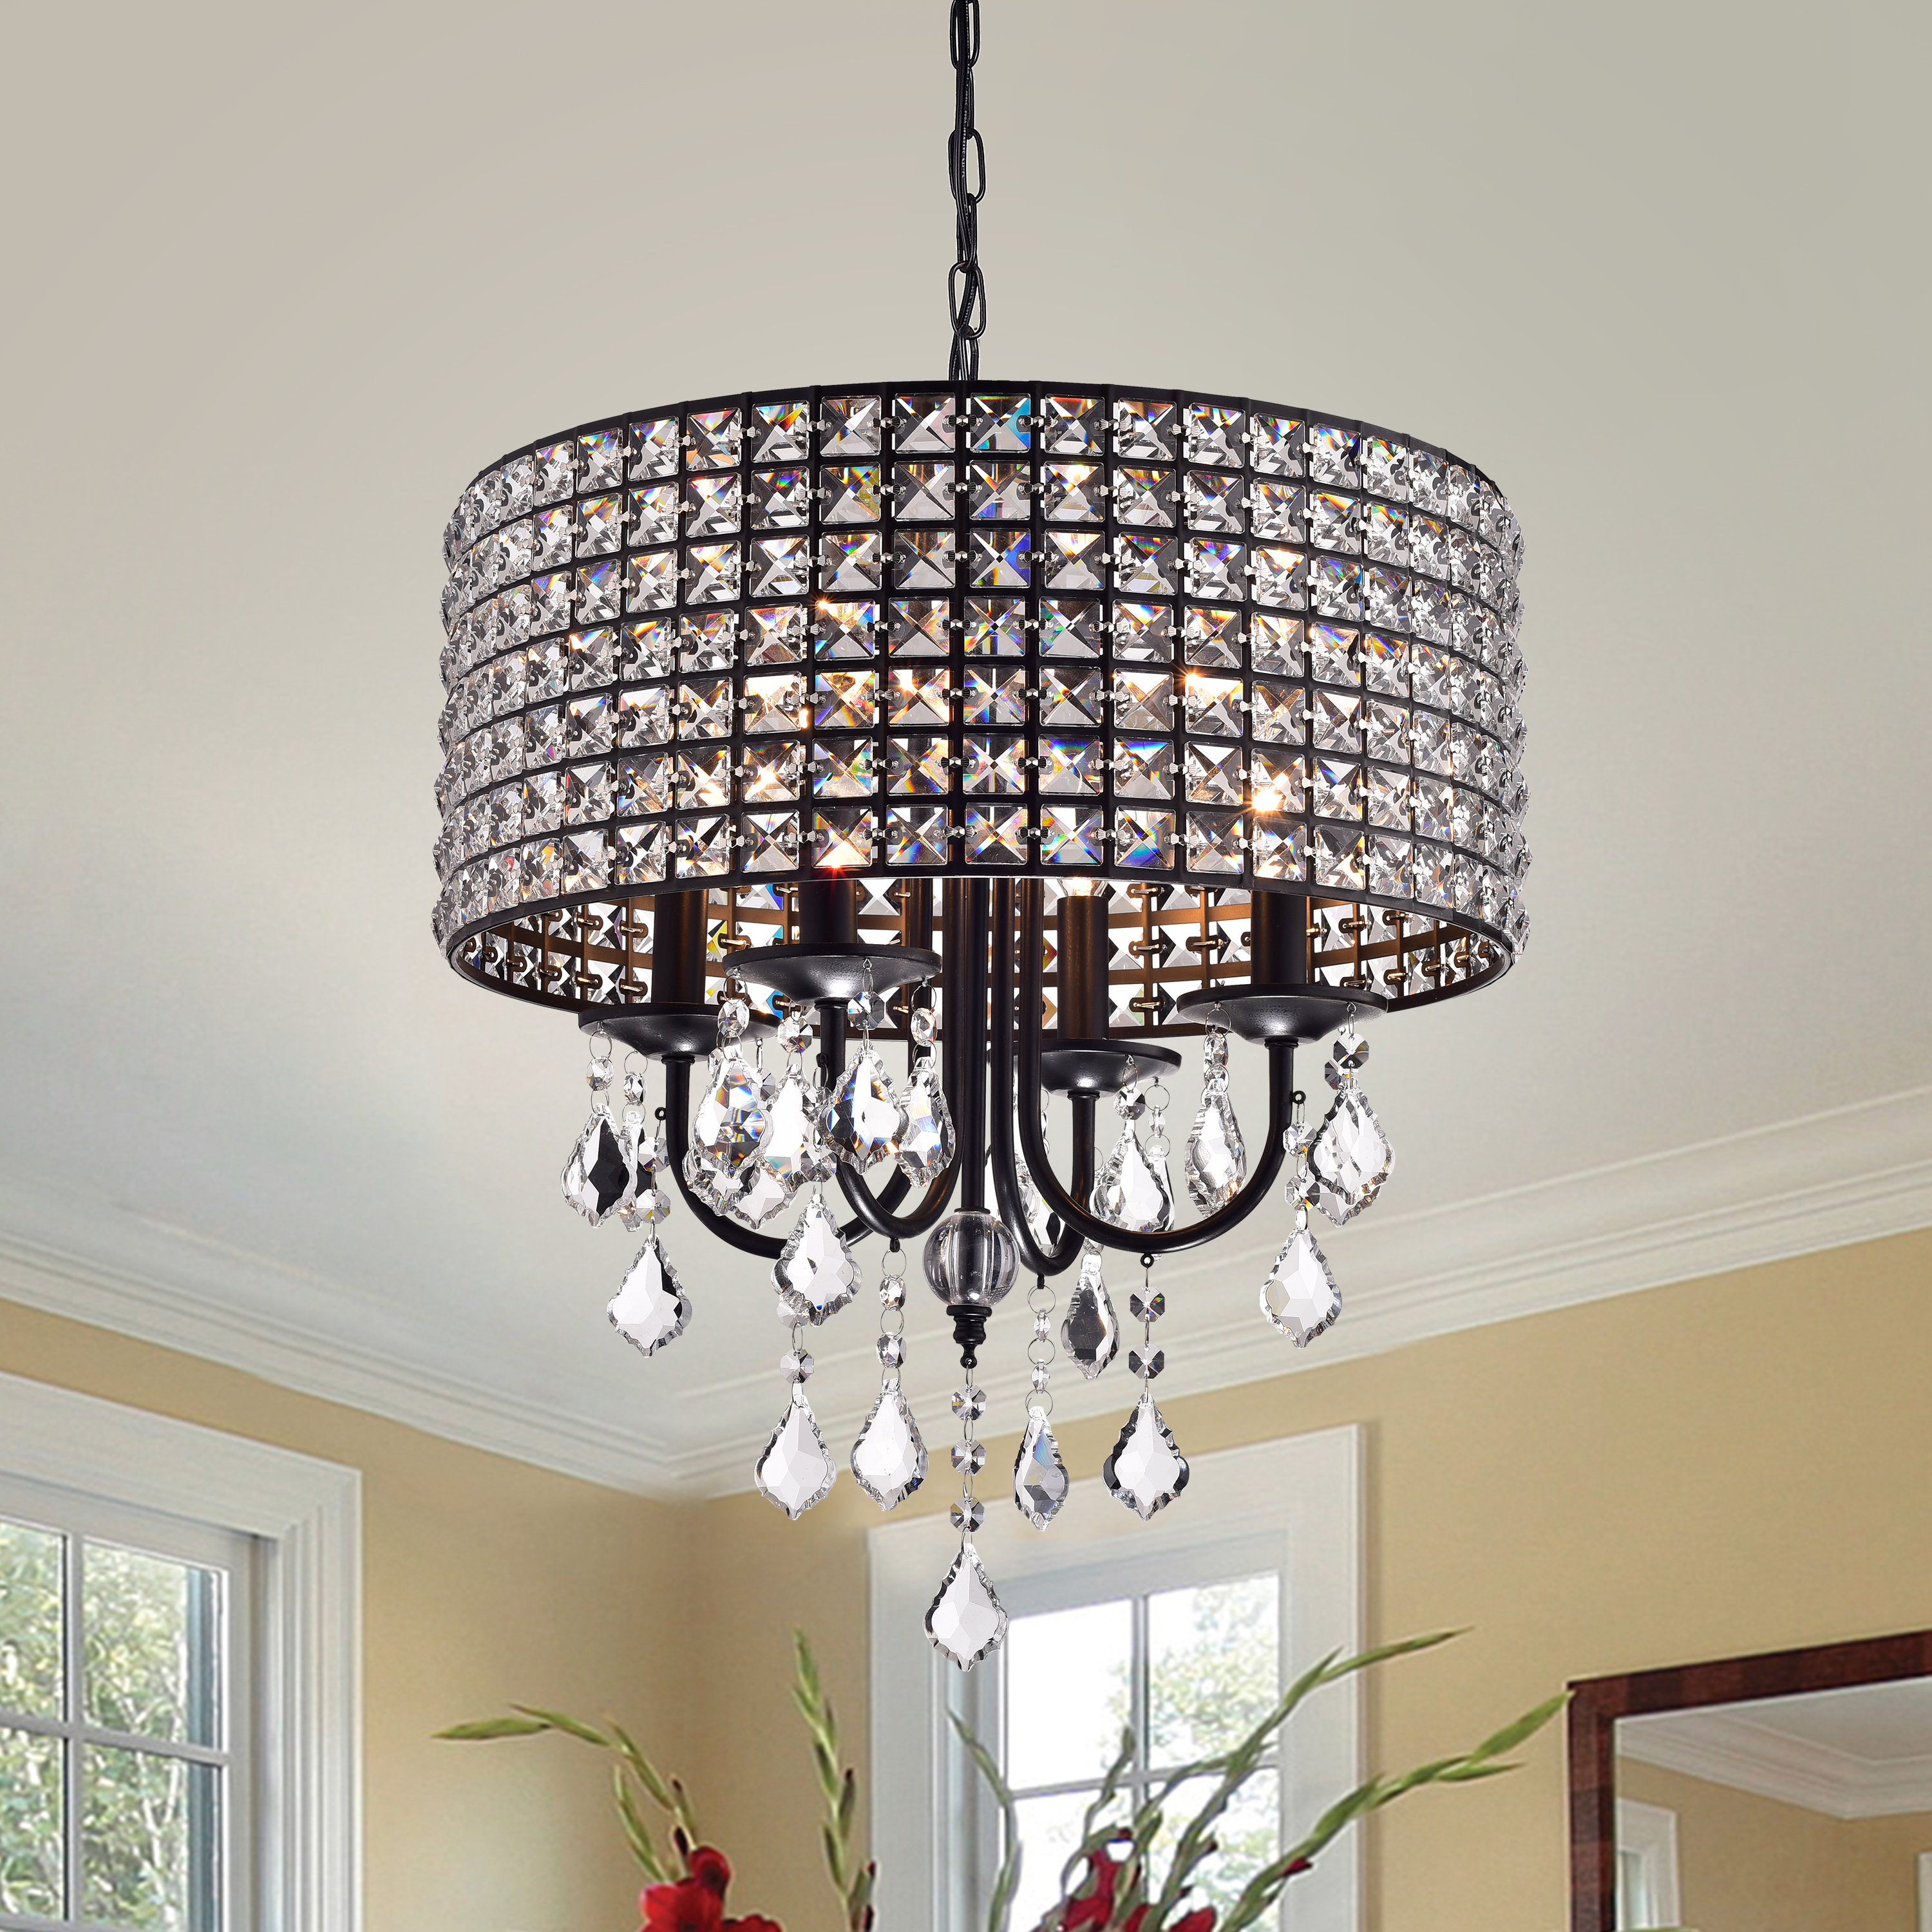 2020 Albano 4 Light Crystal Chandelier Regarding Alverez 4 Light Drum Chandeliers (View 19 of 25)